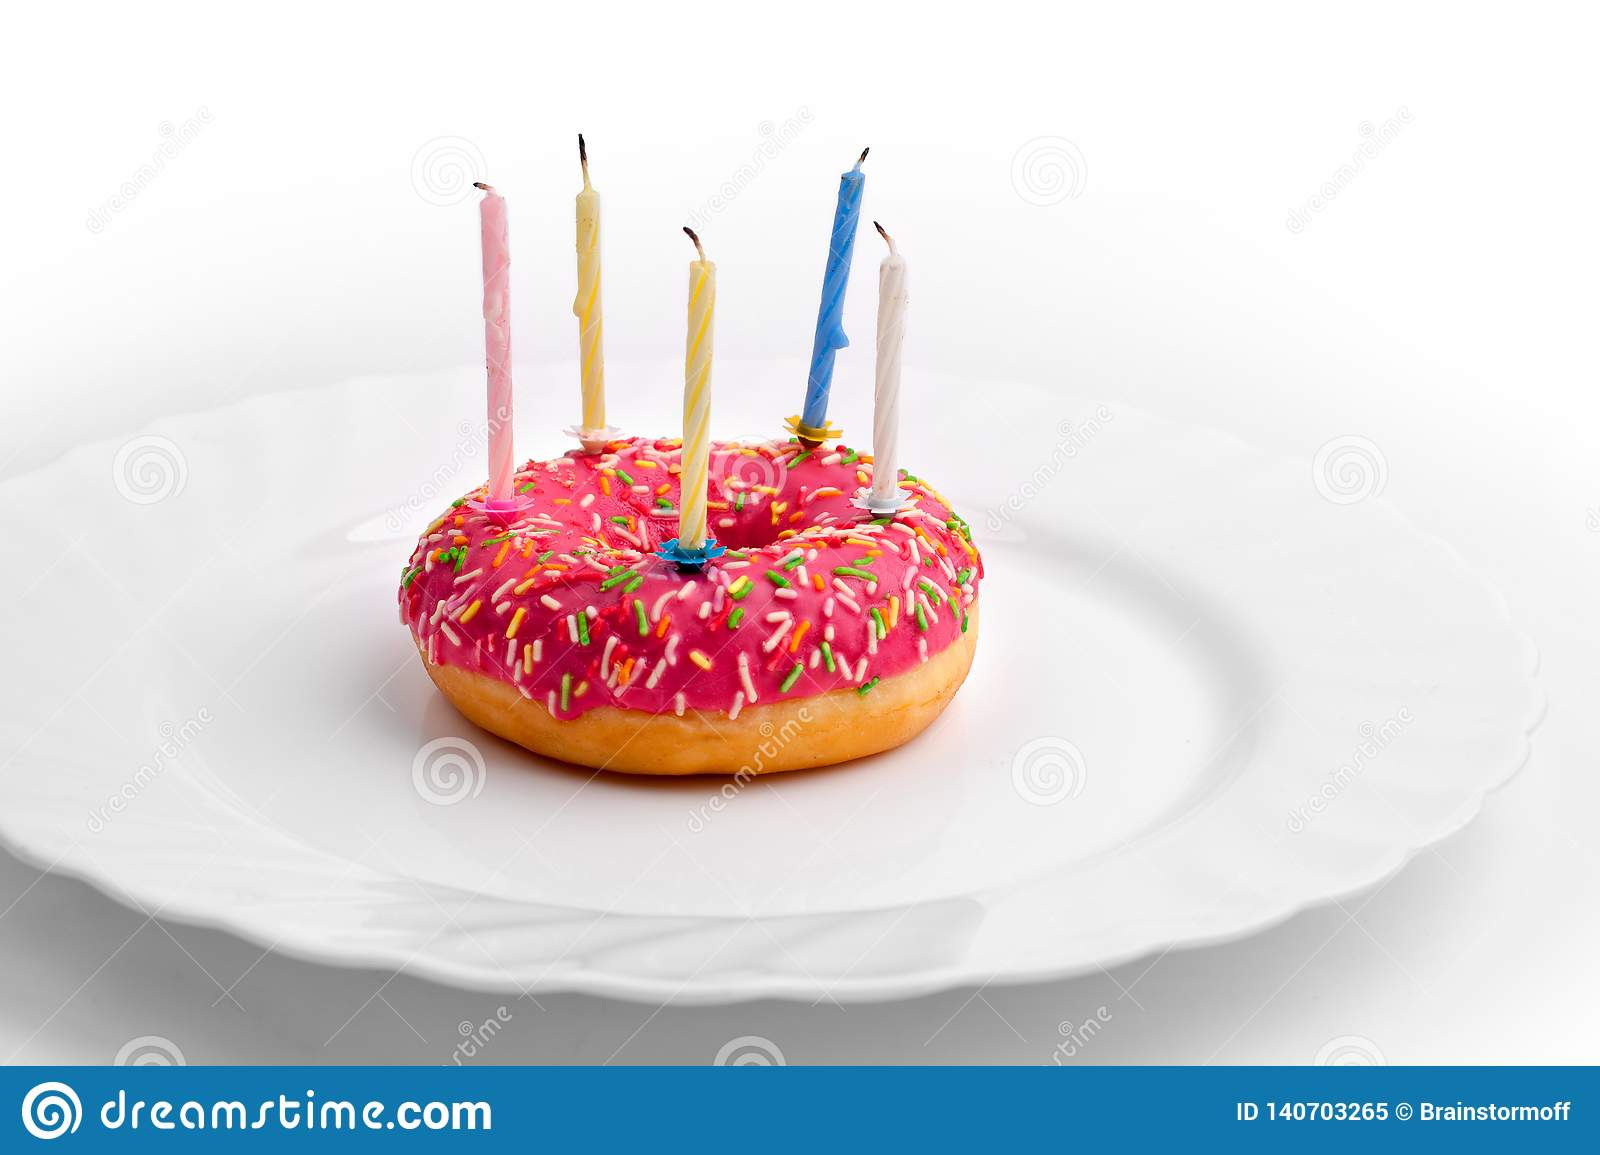 Pink donut on white plate like birthday cake with candles on white background